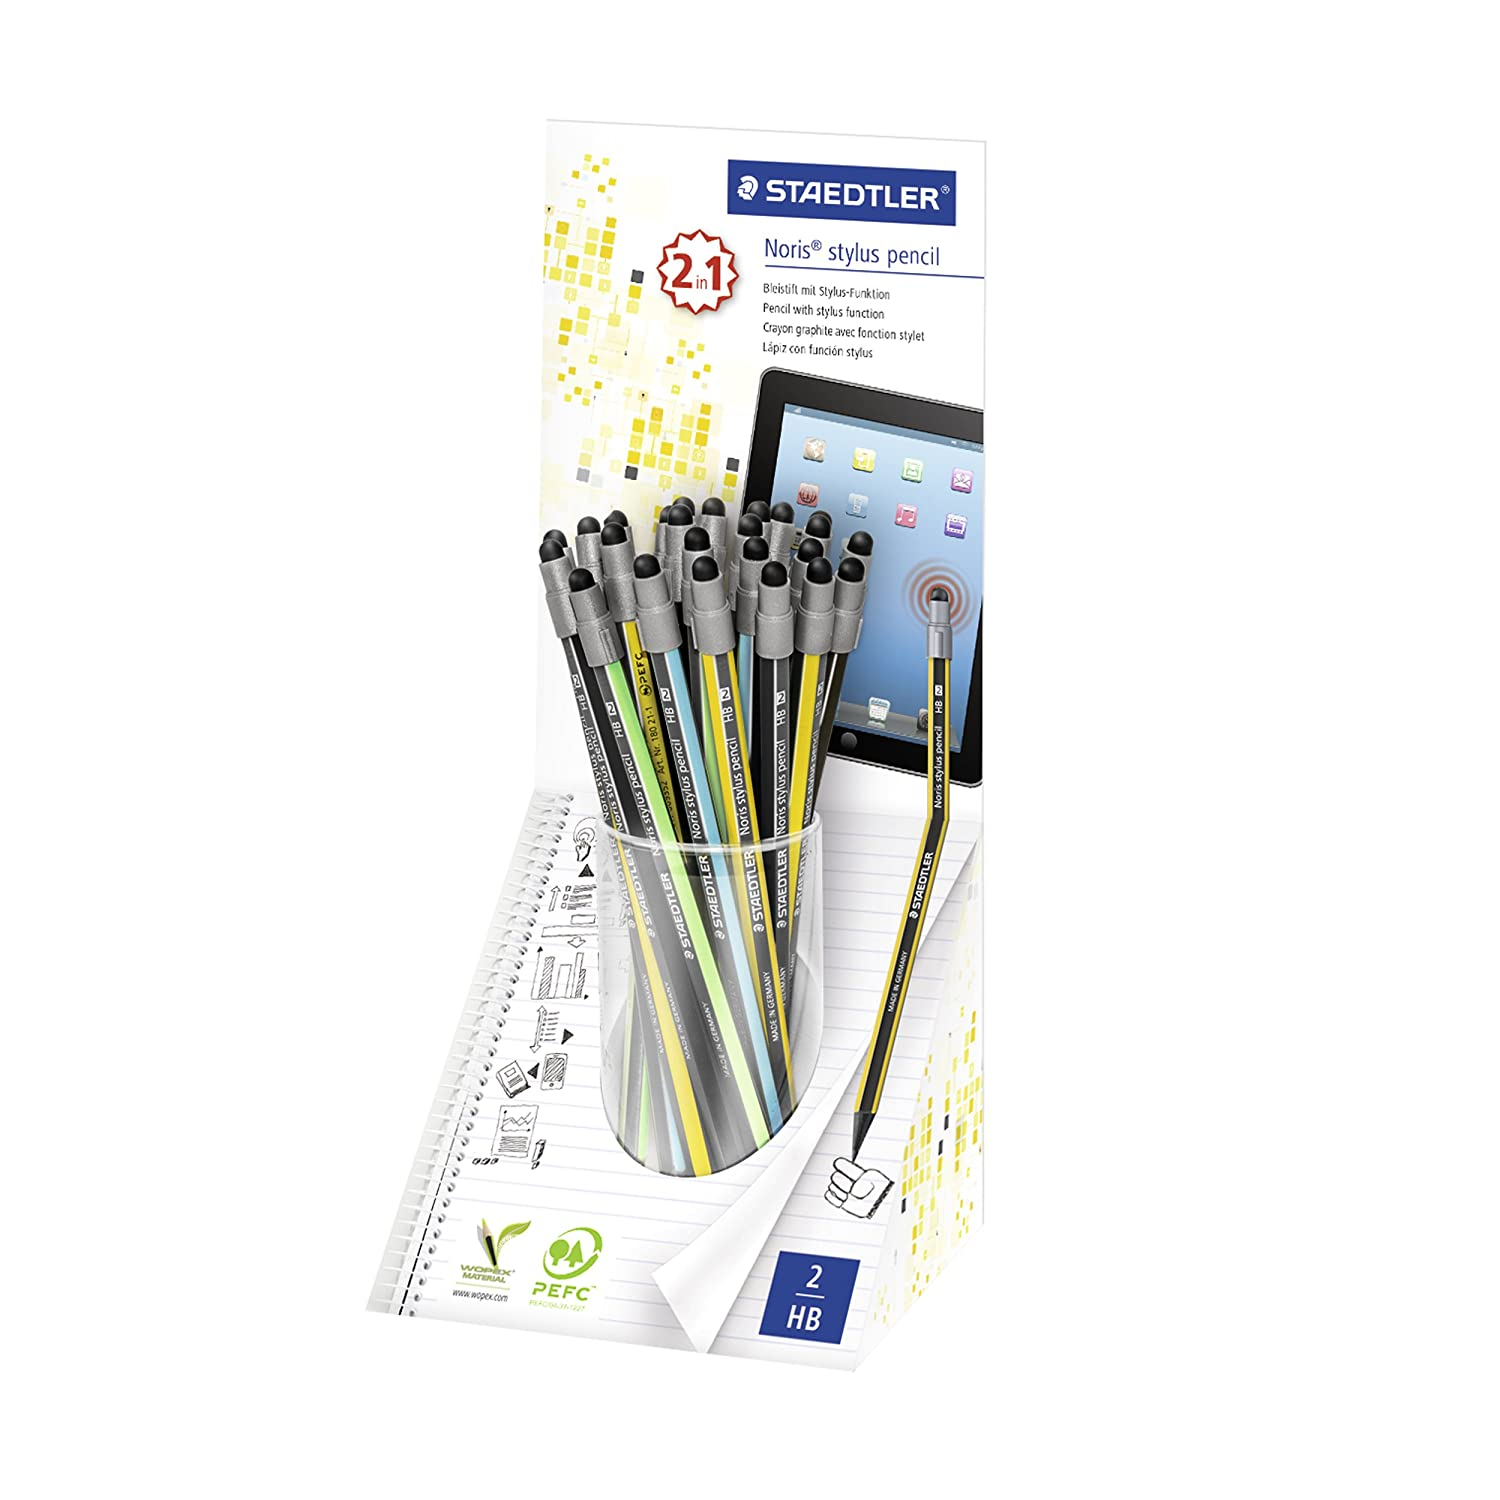 Staedtler 180 21KP24 Noris stylus Pencil Set of 24 in Display Box 180 21KP24ST